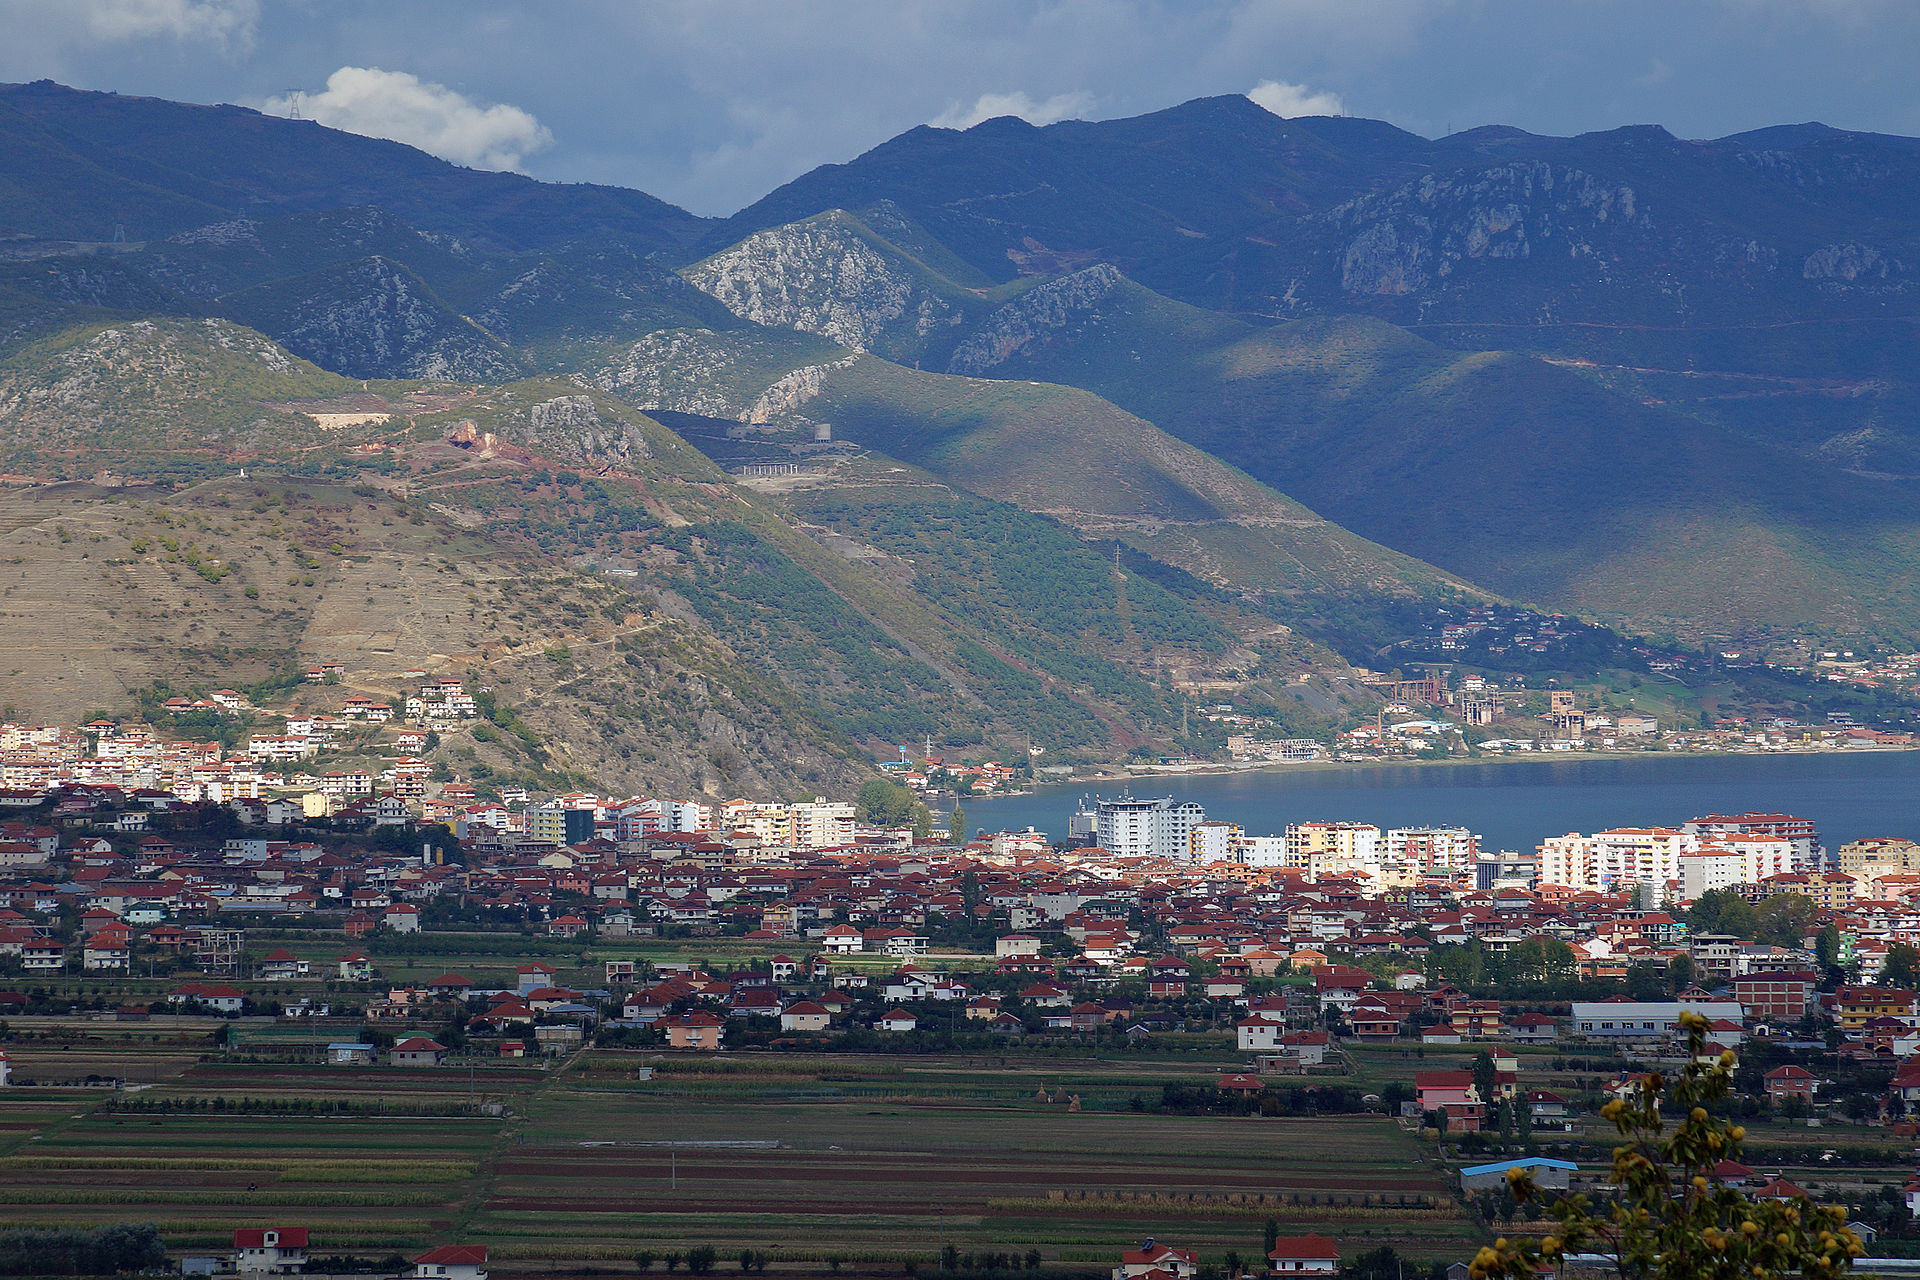 Albinfo, CC BY 3.0, http://commons.wikimedia.org/wiki/File:Pogradec_from_South.jpg